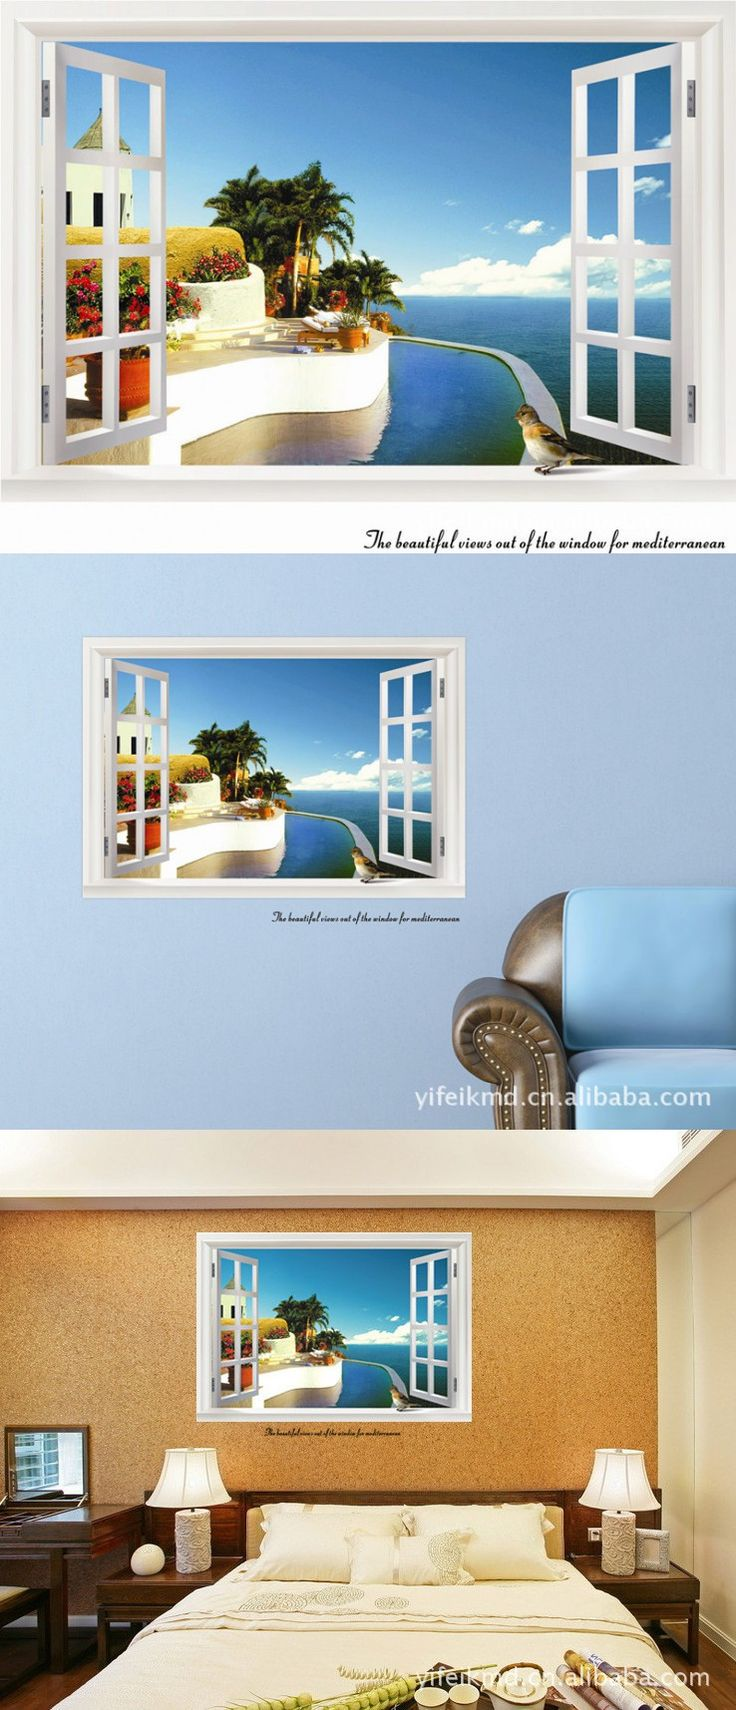 Mediterranean Landscape Summer Seaside Fake Window Wall Sticker Creative Home Decoration Wall Paper 60*90cm Free Shipping $6